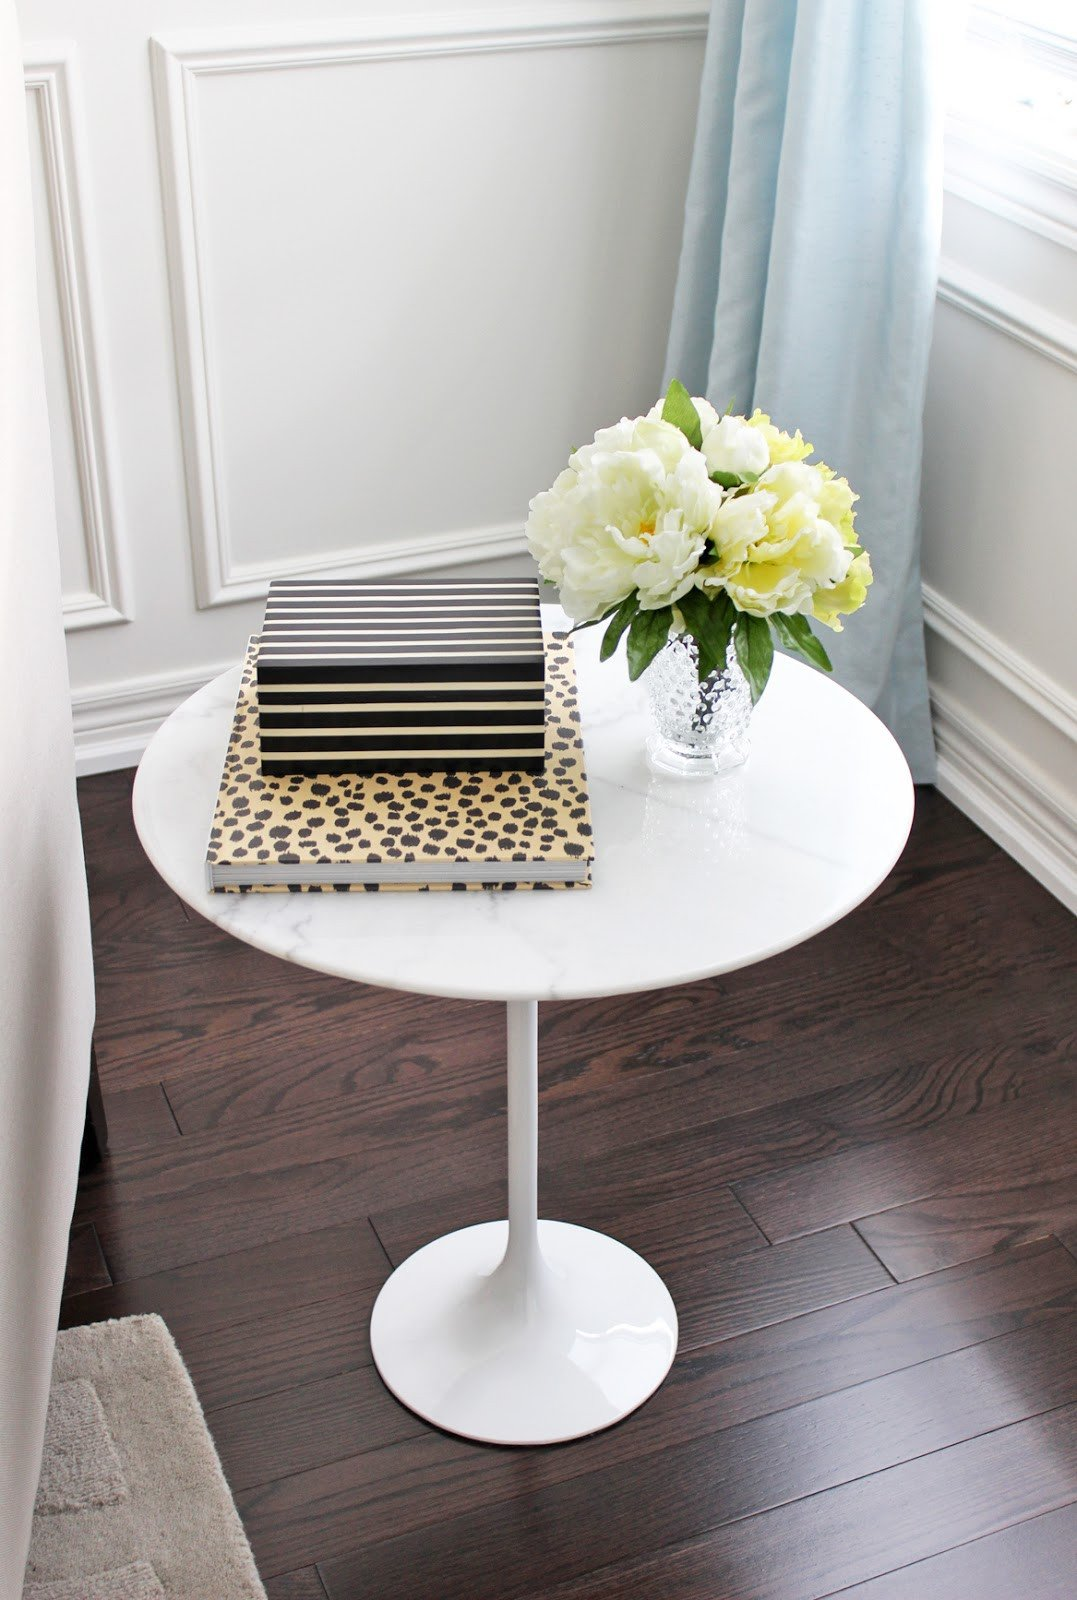 Living Room Side Table Decor Different Ways to Style An End Table